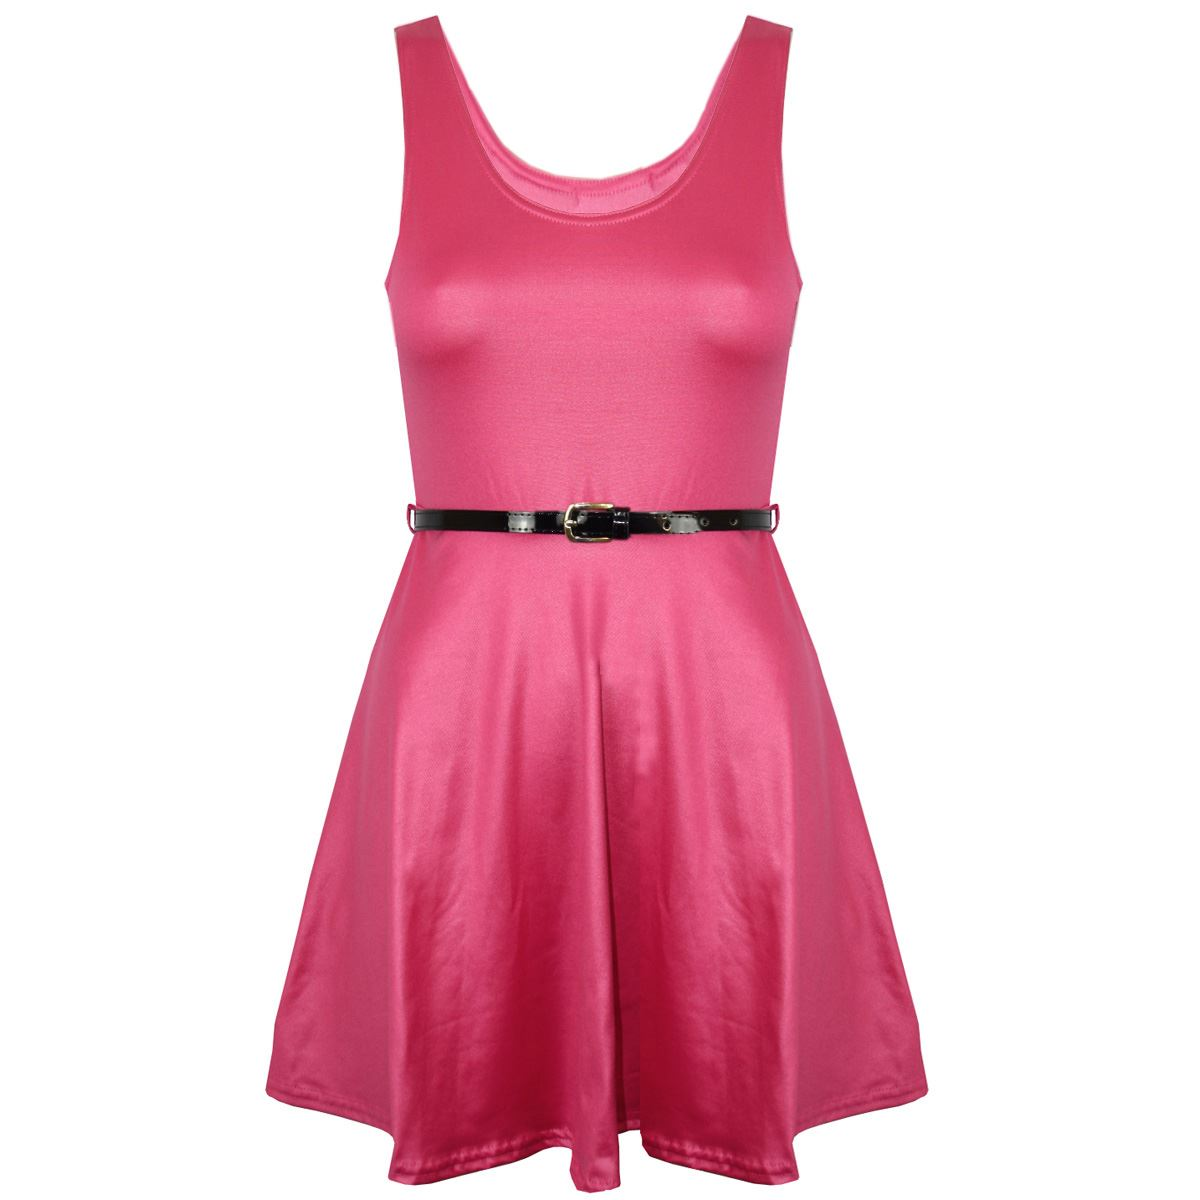 New-Womens-Ladies-Belted-Sleeveless-Franki-Flared-Party-Swing-Skater-Dress-Top thumbnail 32